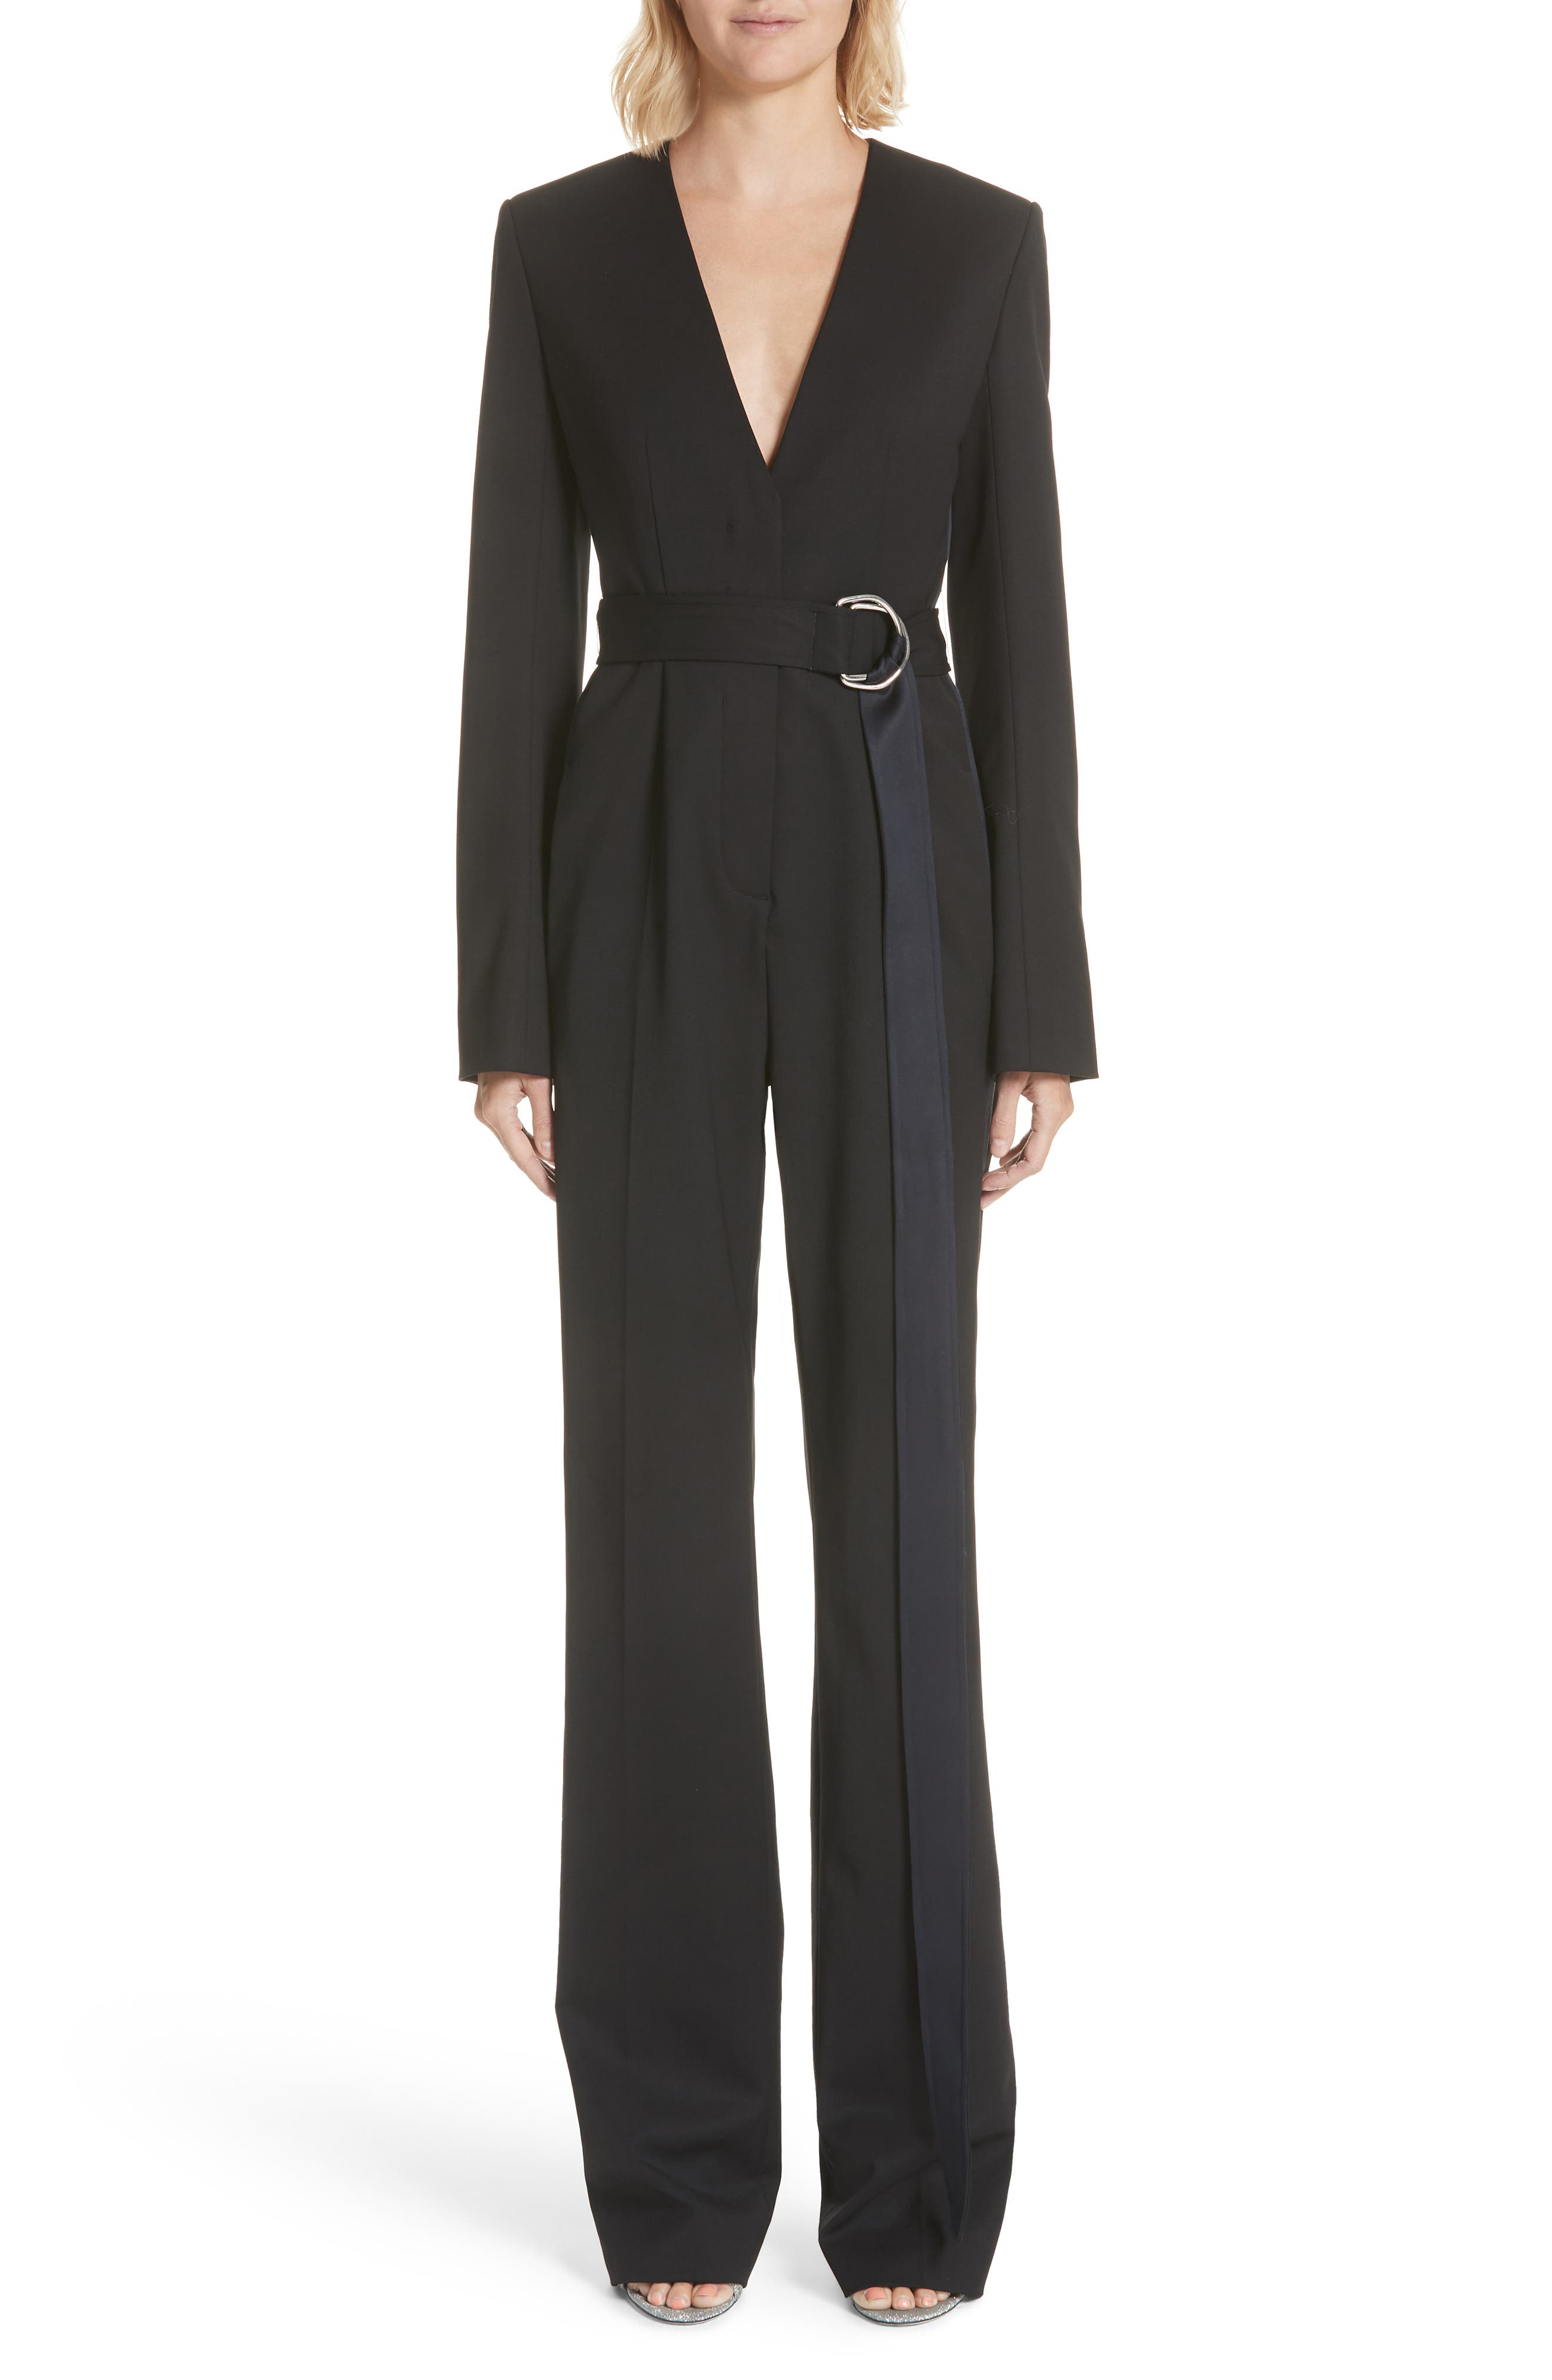 CALVIN KLEIN 205W39NYC, Side Stripe Wool Blend Jumpsuit, Main thumbnail 1, color, BLACK DARK NAVY